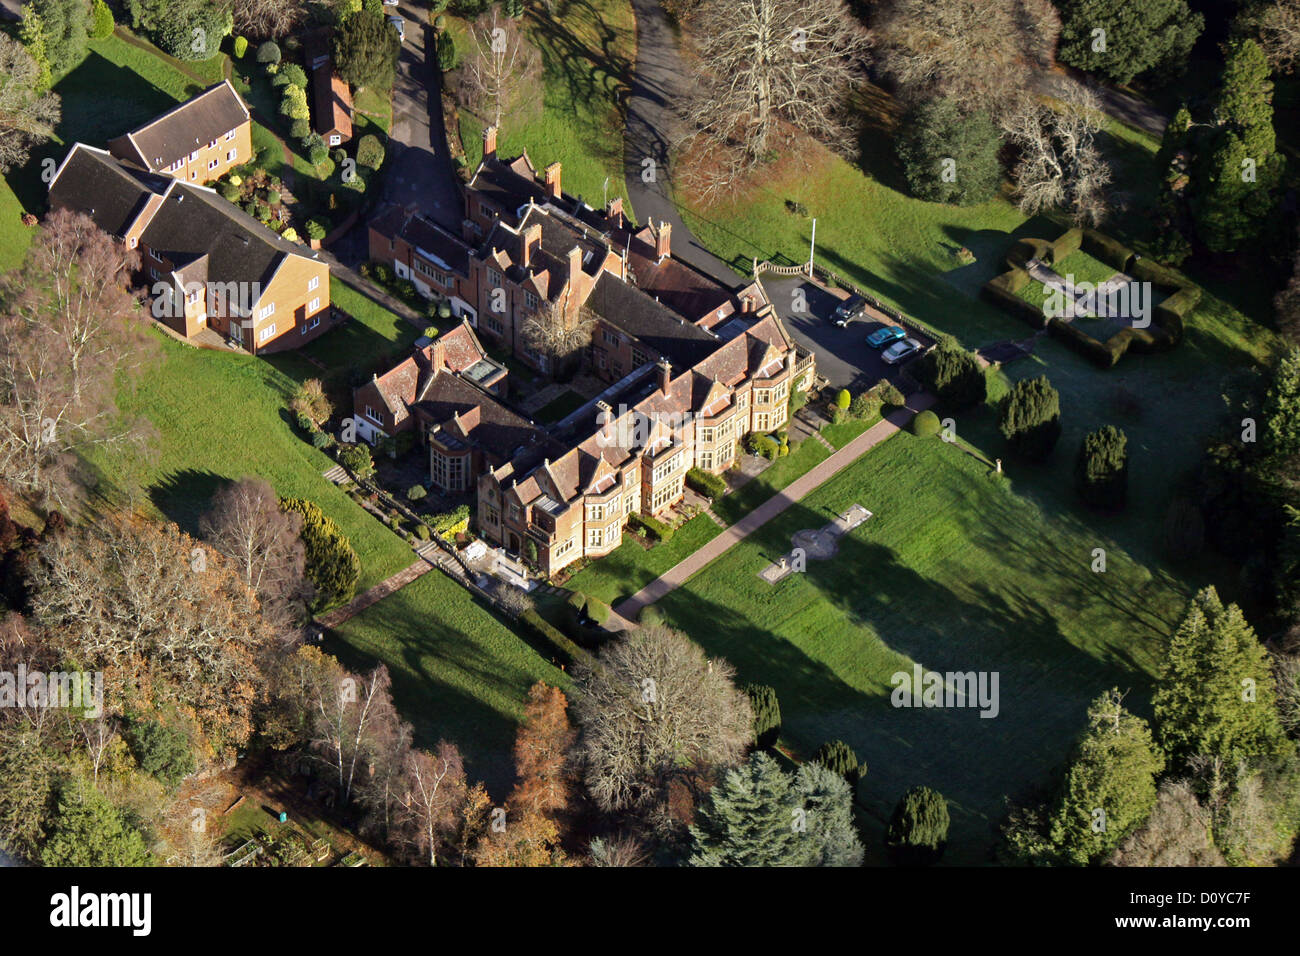 large country house in Sidmouth, Devon - Stock Image